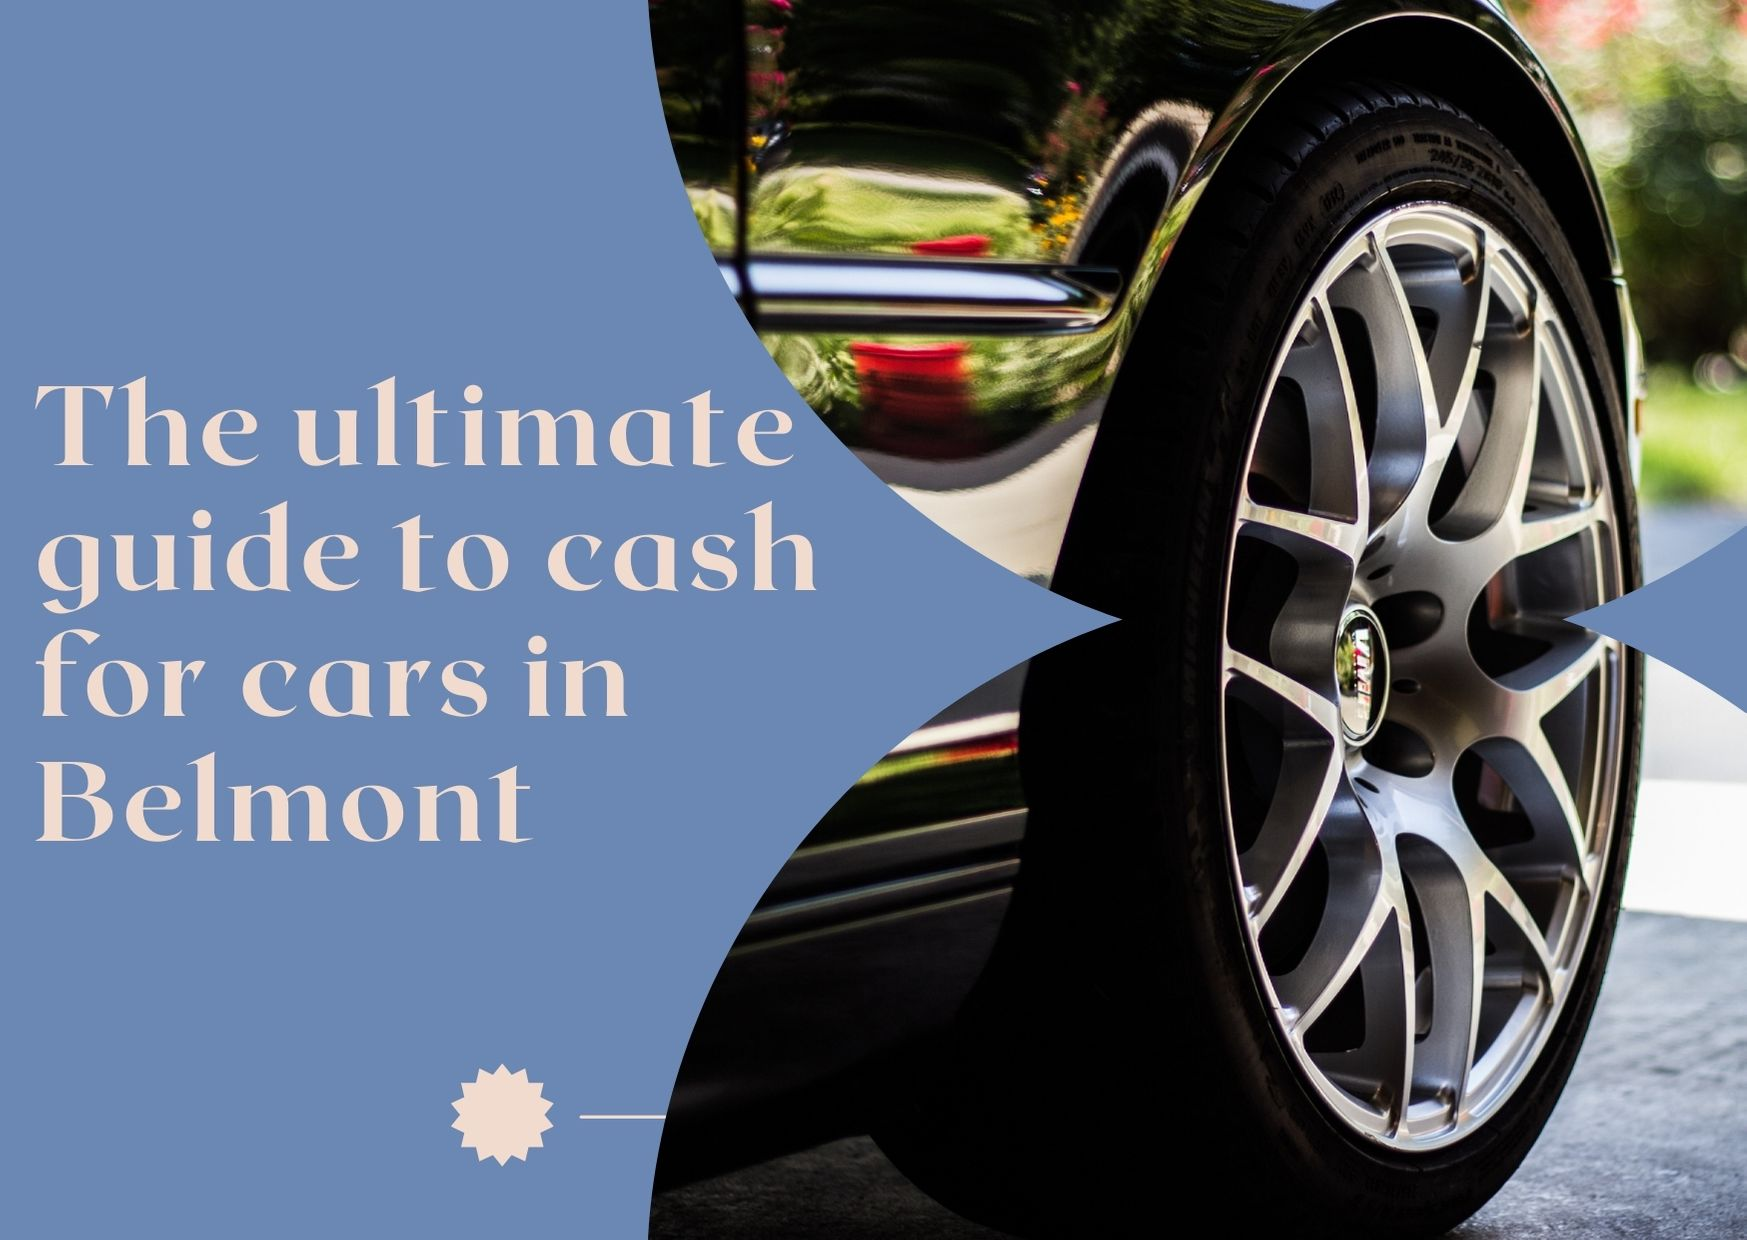 The ultimate guide to cash for cars in Belmont